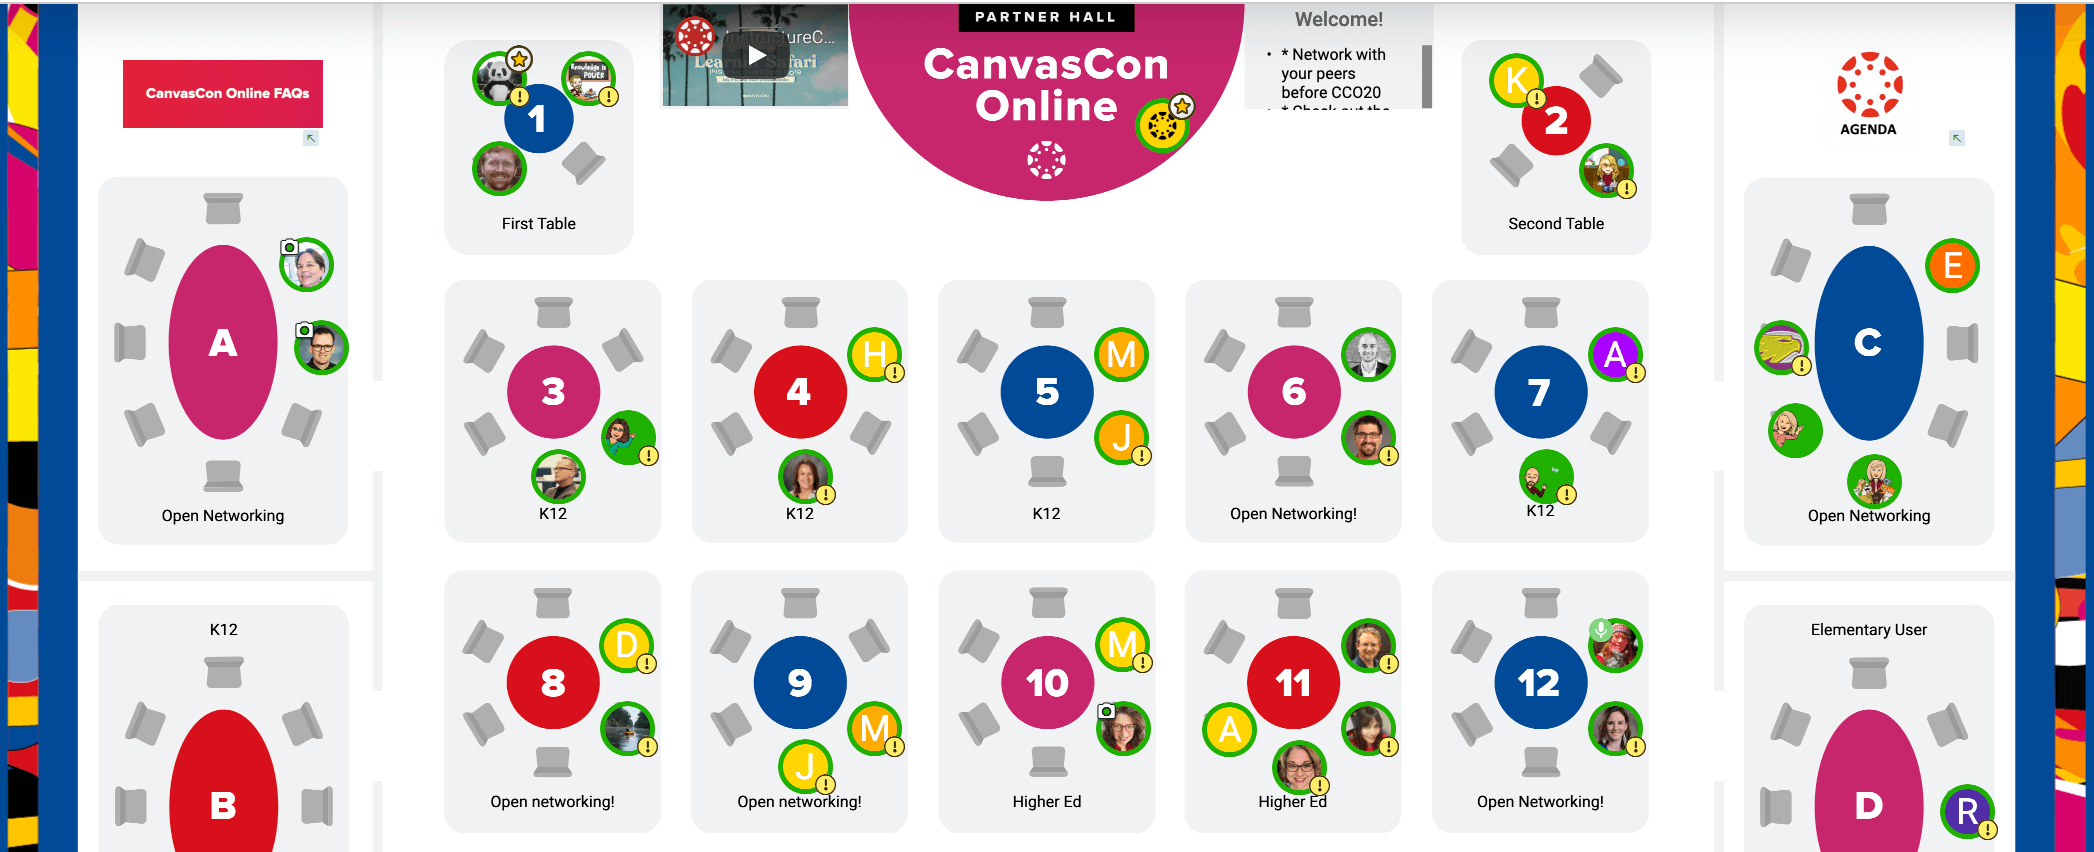 CanvasCon Online Pre-Event Networking